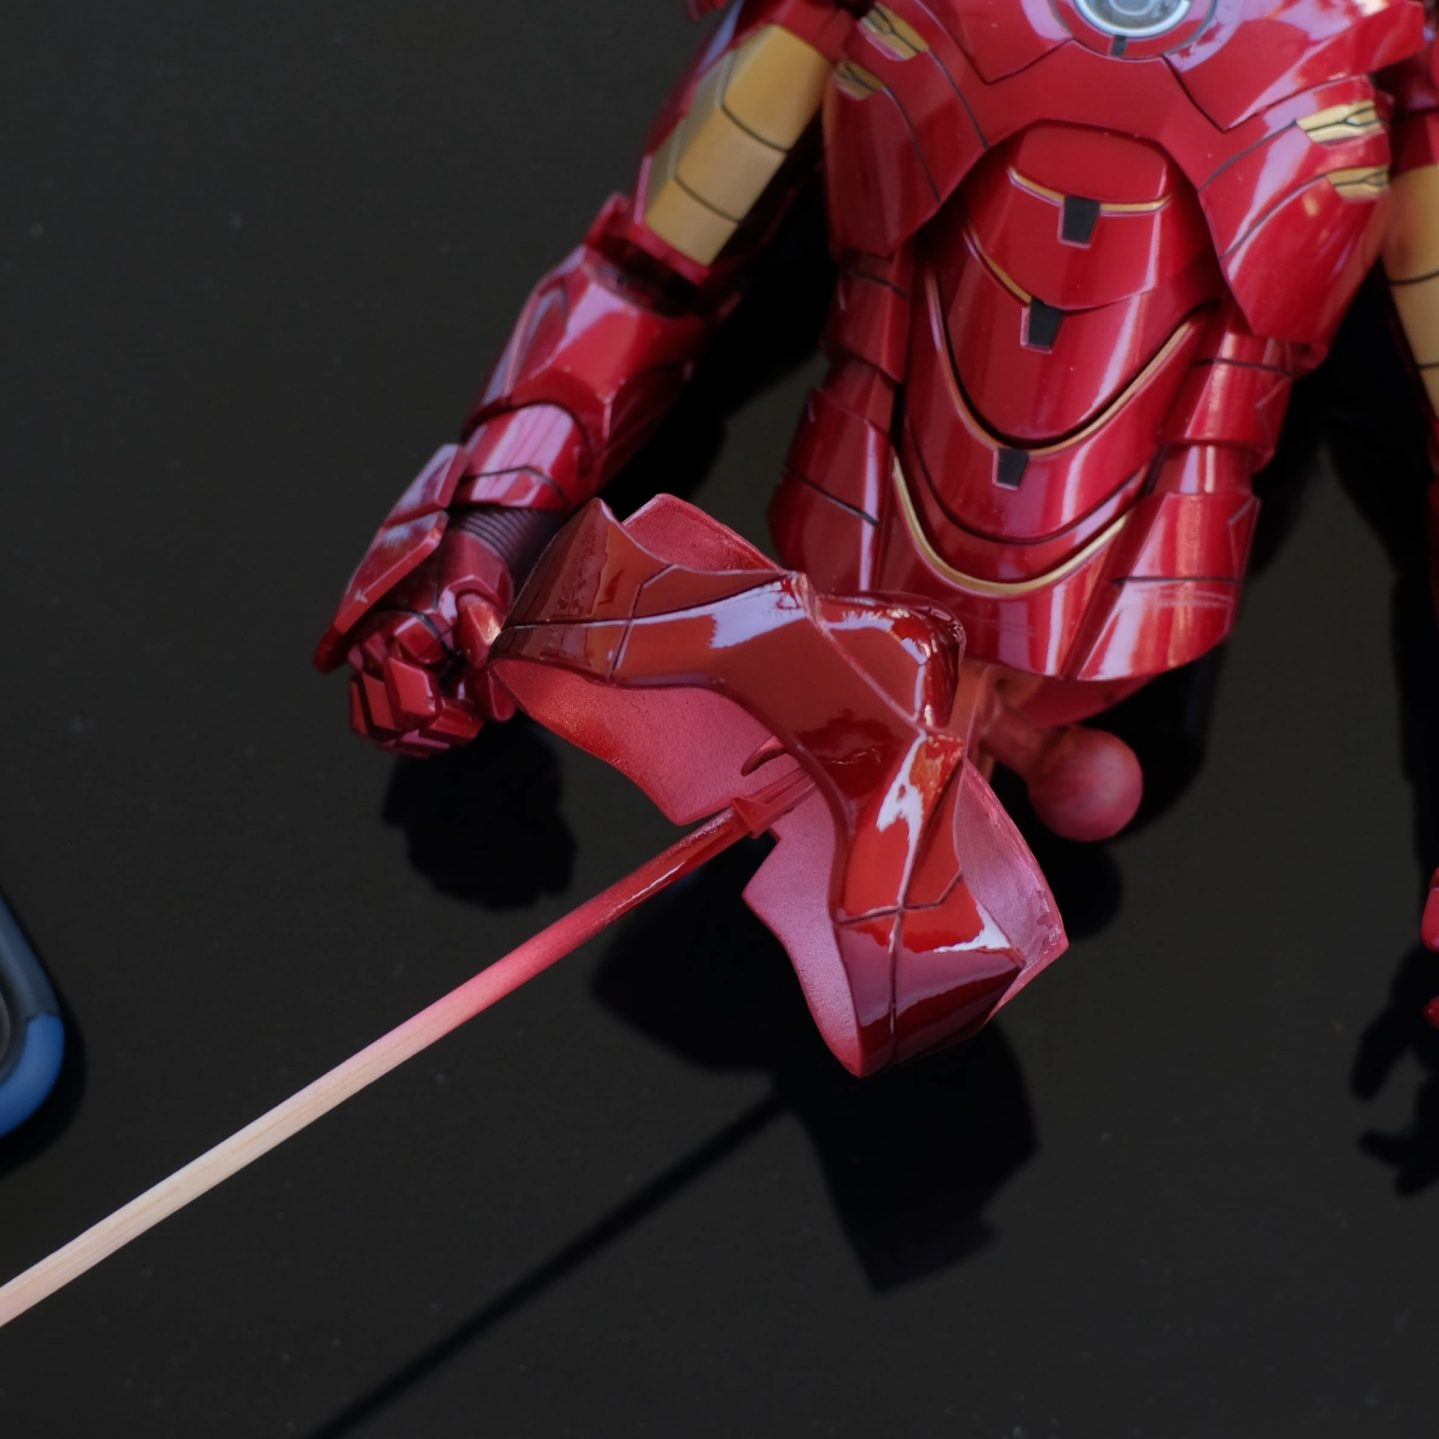 How to fix HT's Iron Man pink panty issue 22